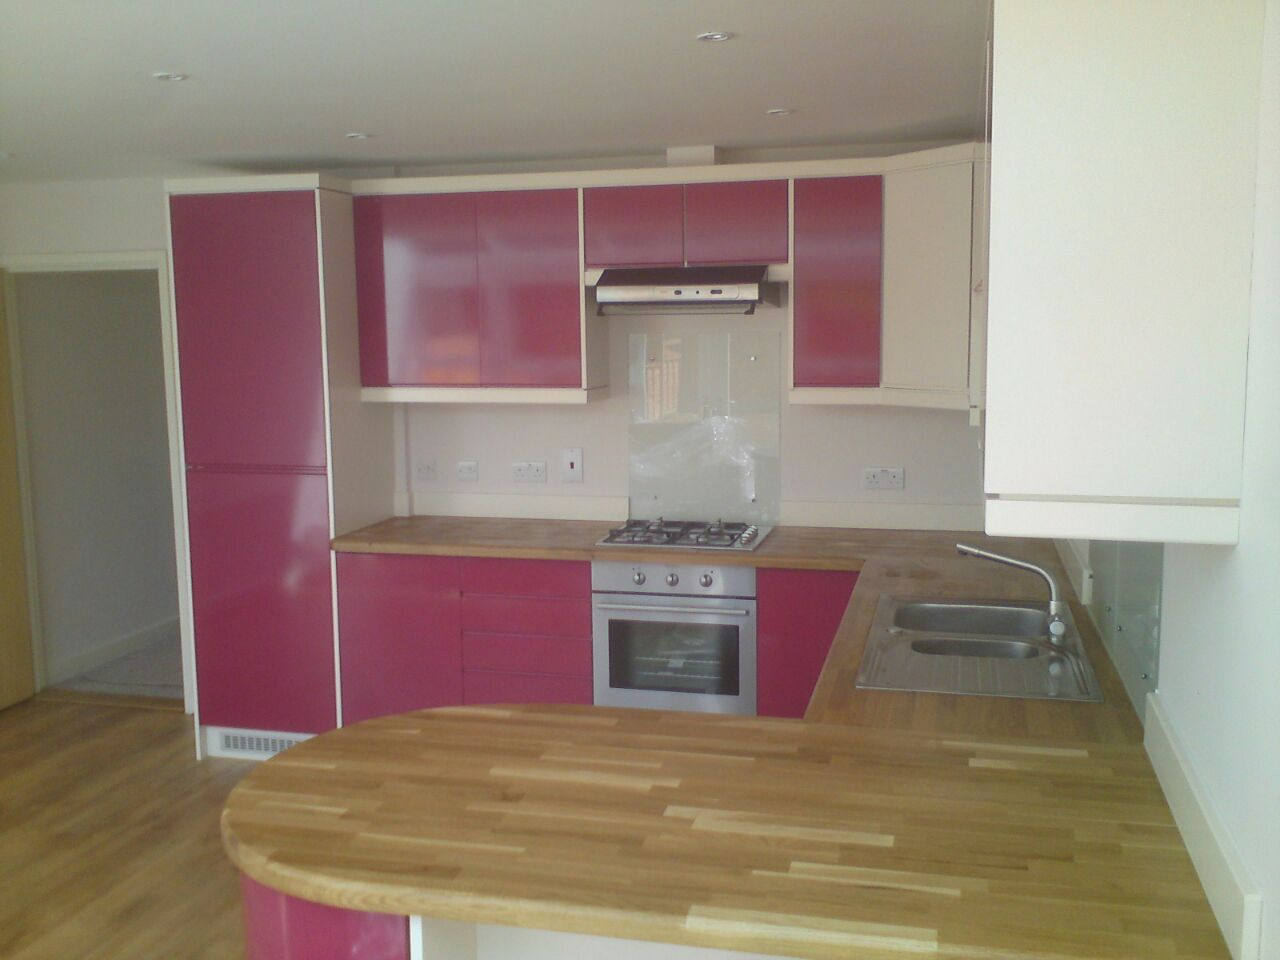 Pink Modular Kitchen with Wood Counter Top and Wood Flooring by Sudeep S Gandhi ID Modular-kitchen Contemporary | Interior Design Photos & Ideas